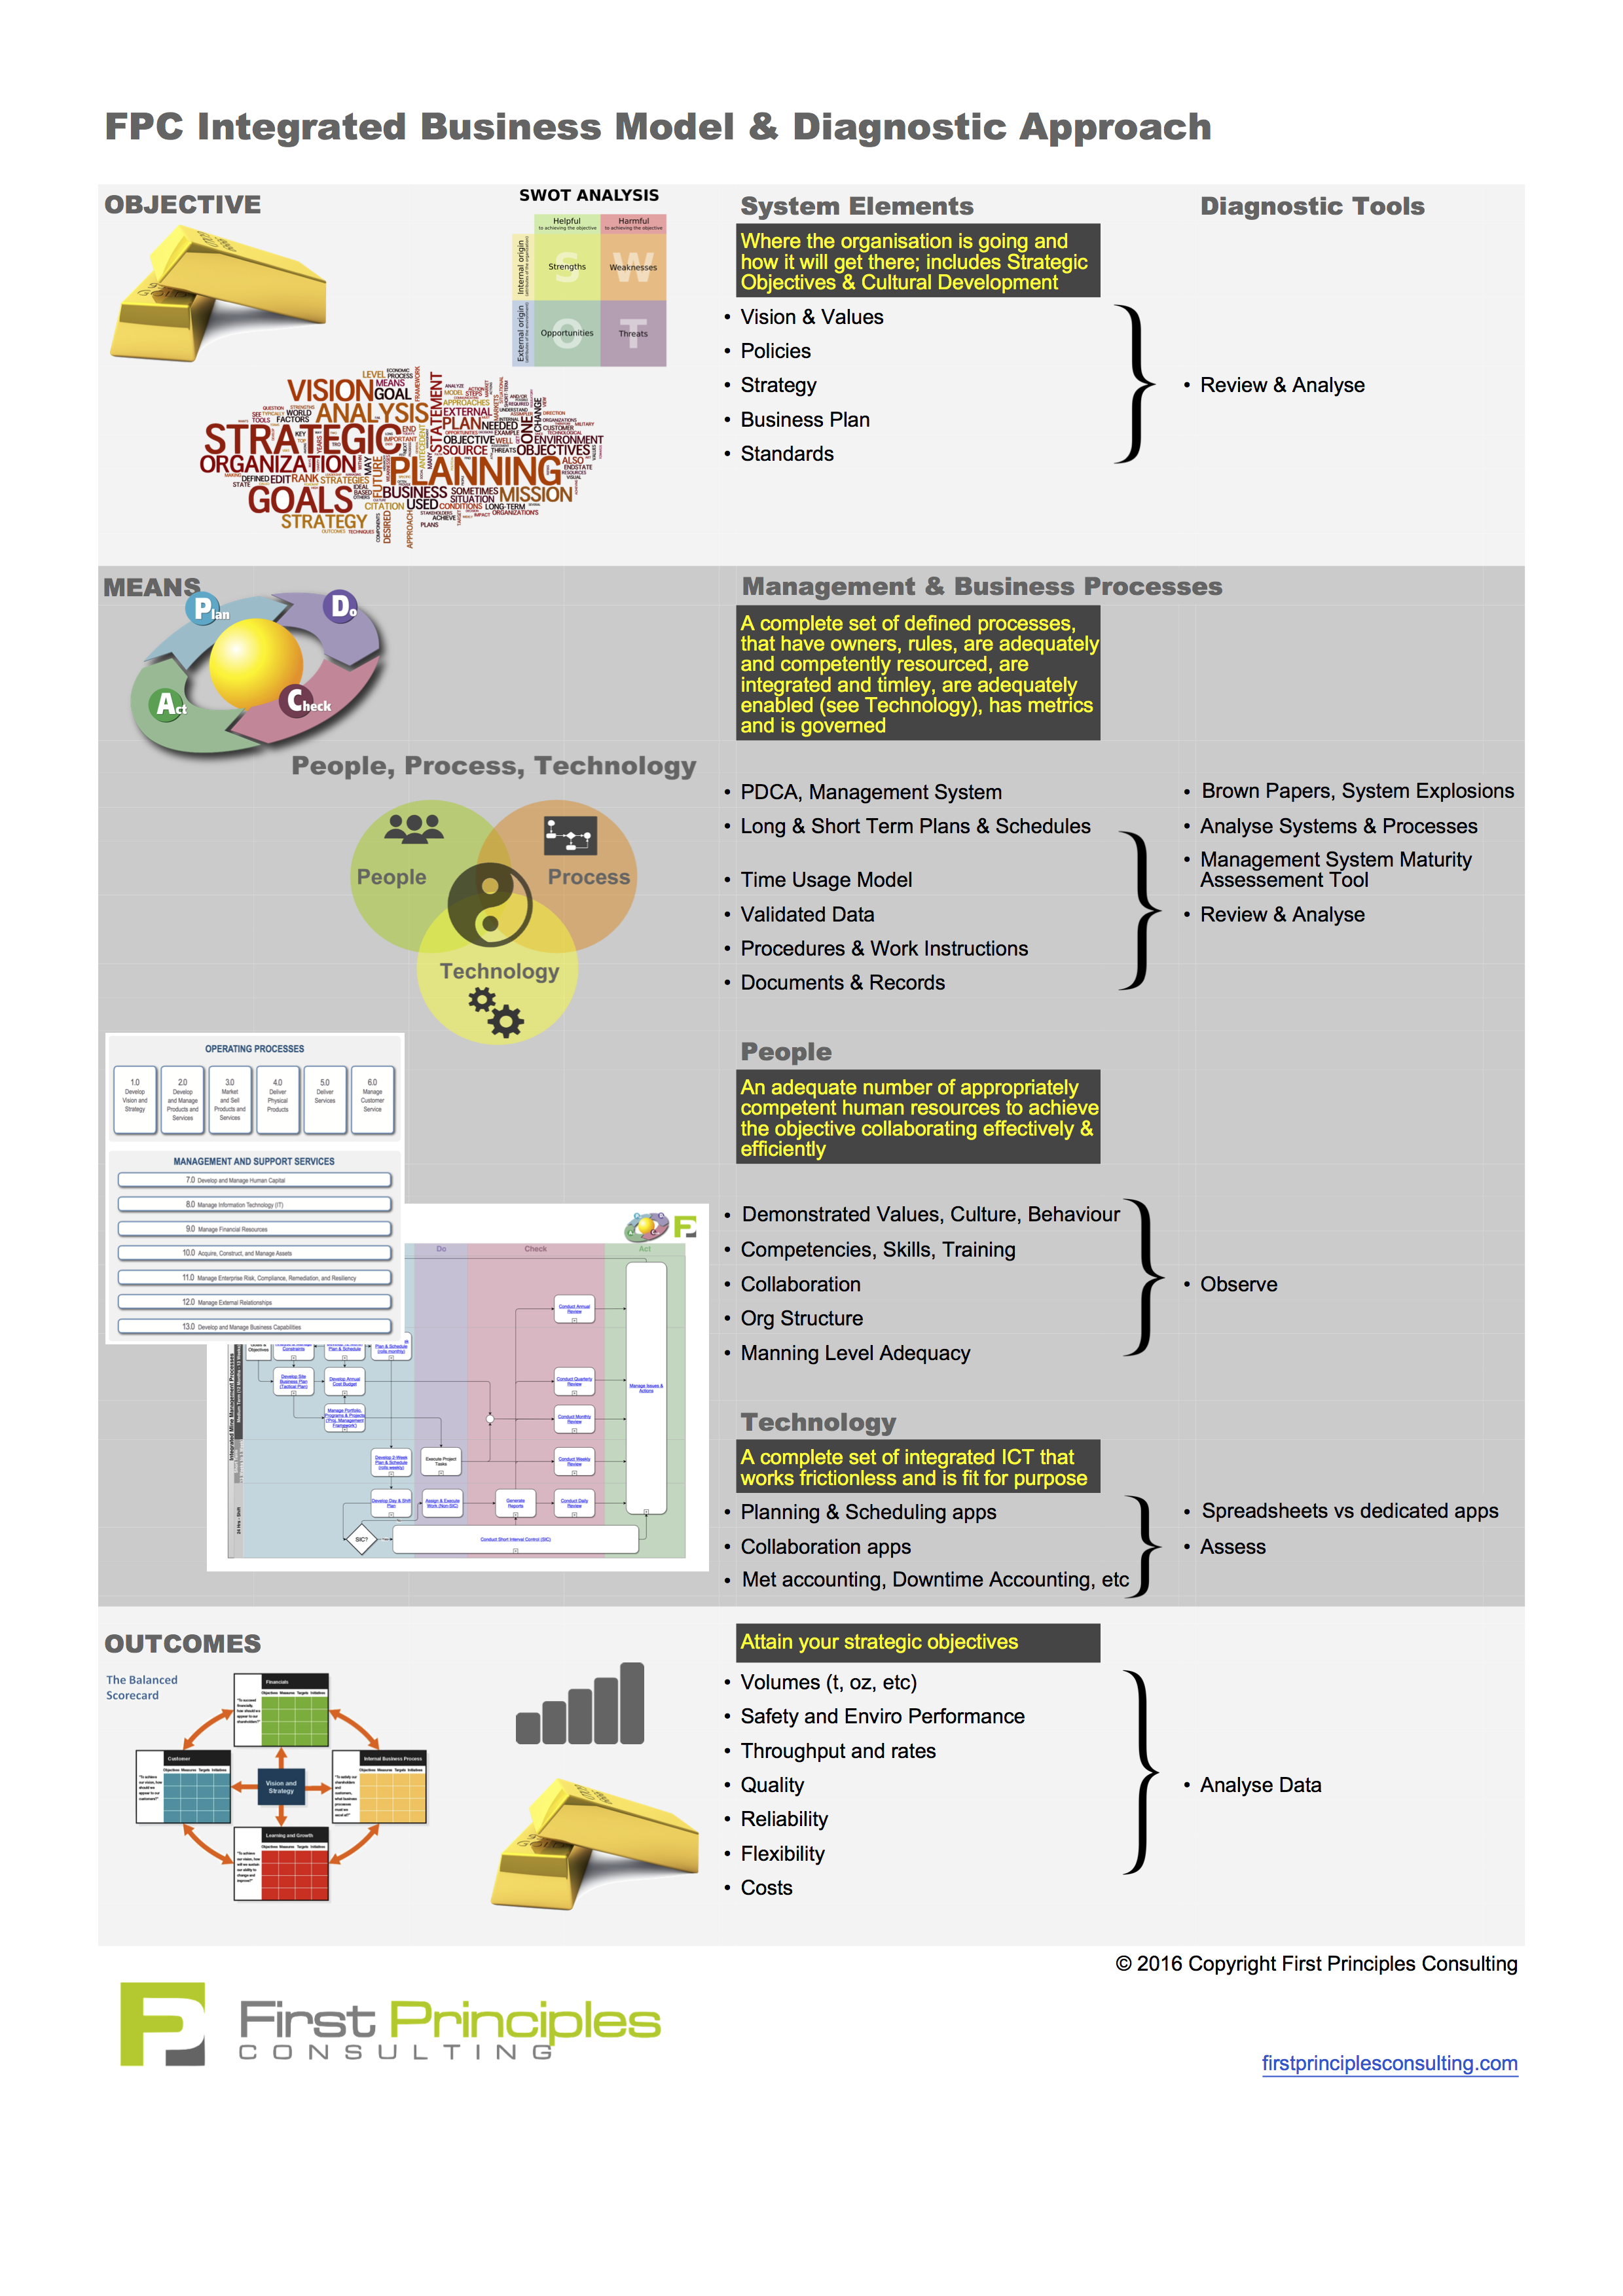 Integrated_Business_Model_and_Diagnostic_Approach_-_First_Principles.png